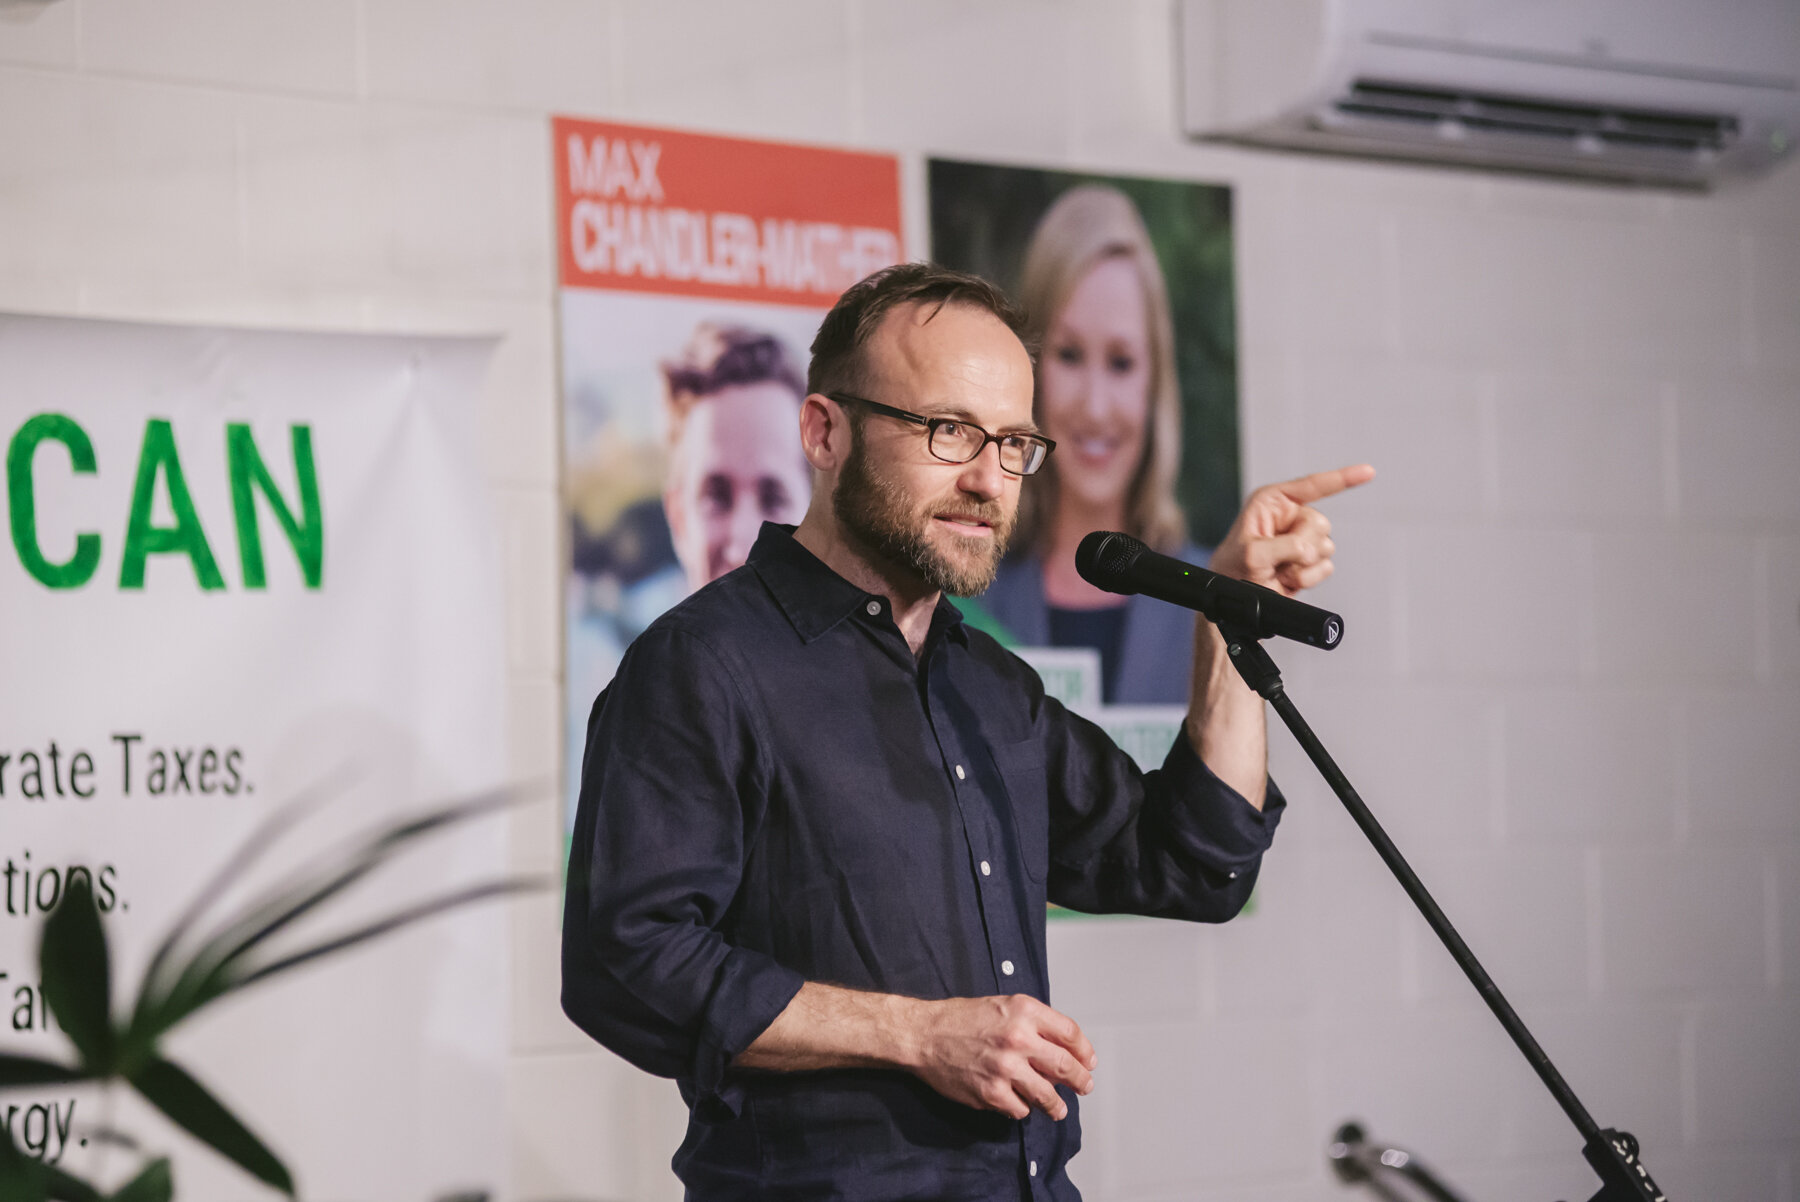 Griffith Campaign Launch web-65.jpg